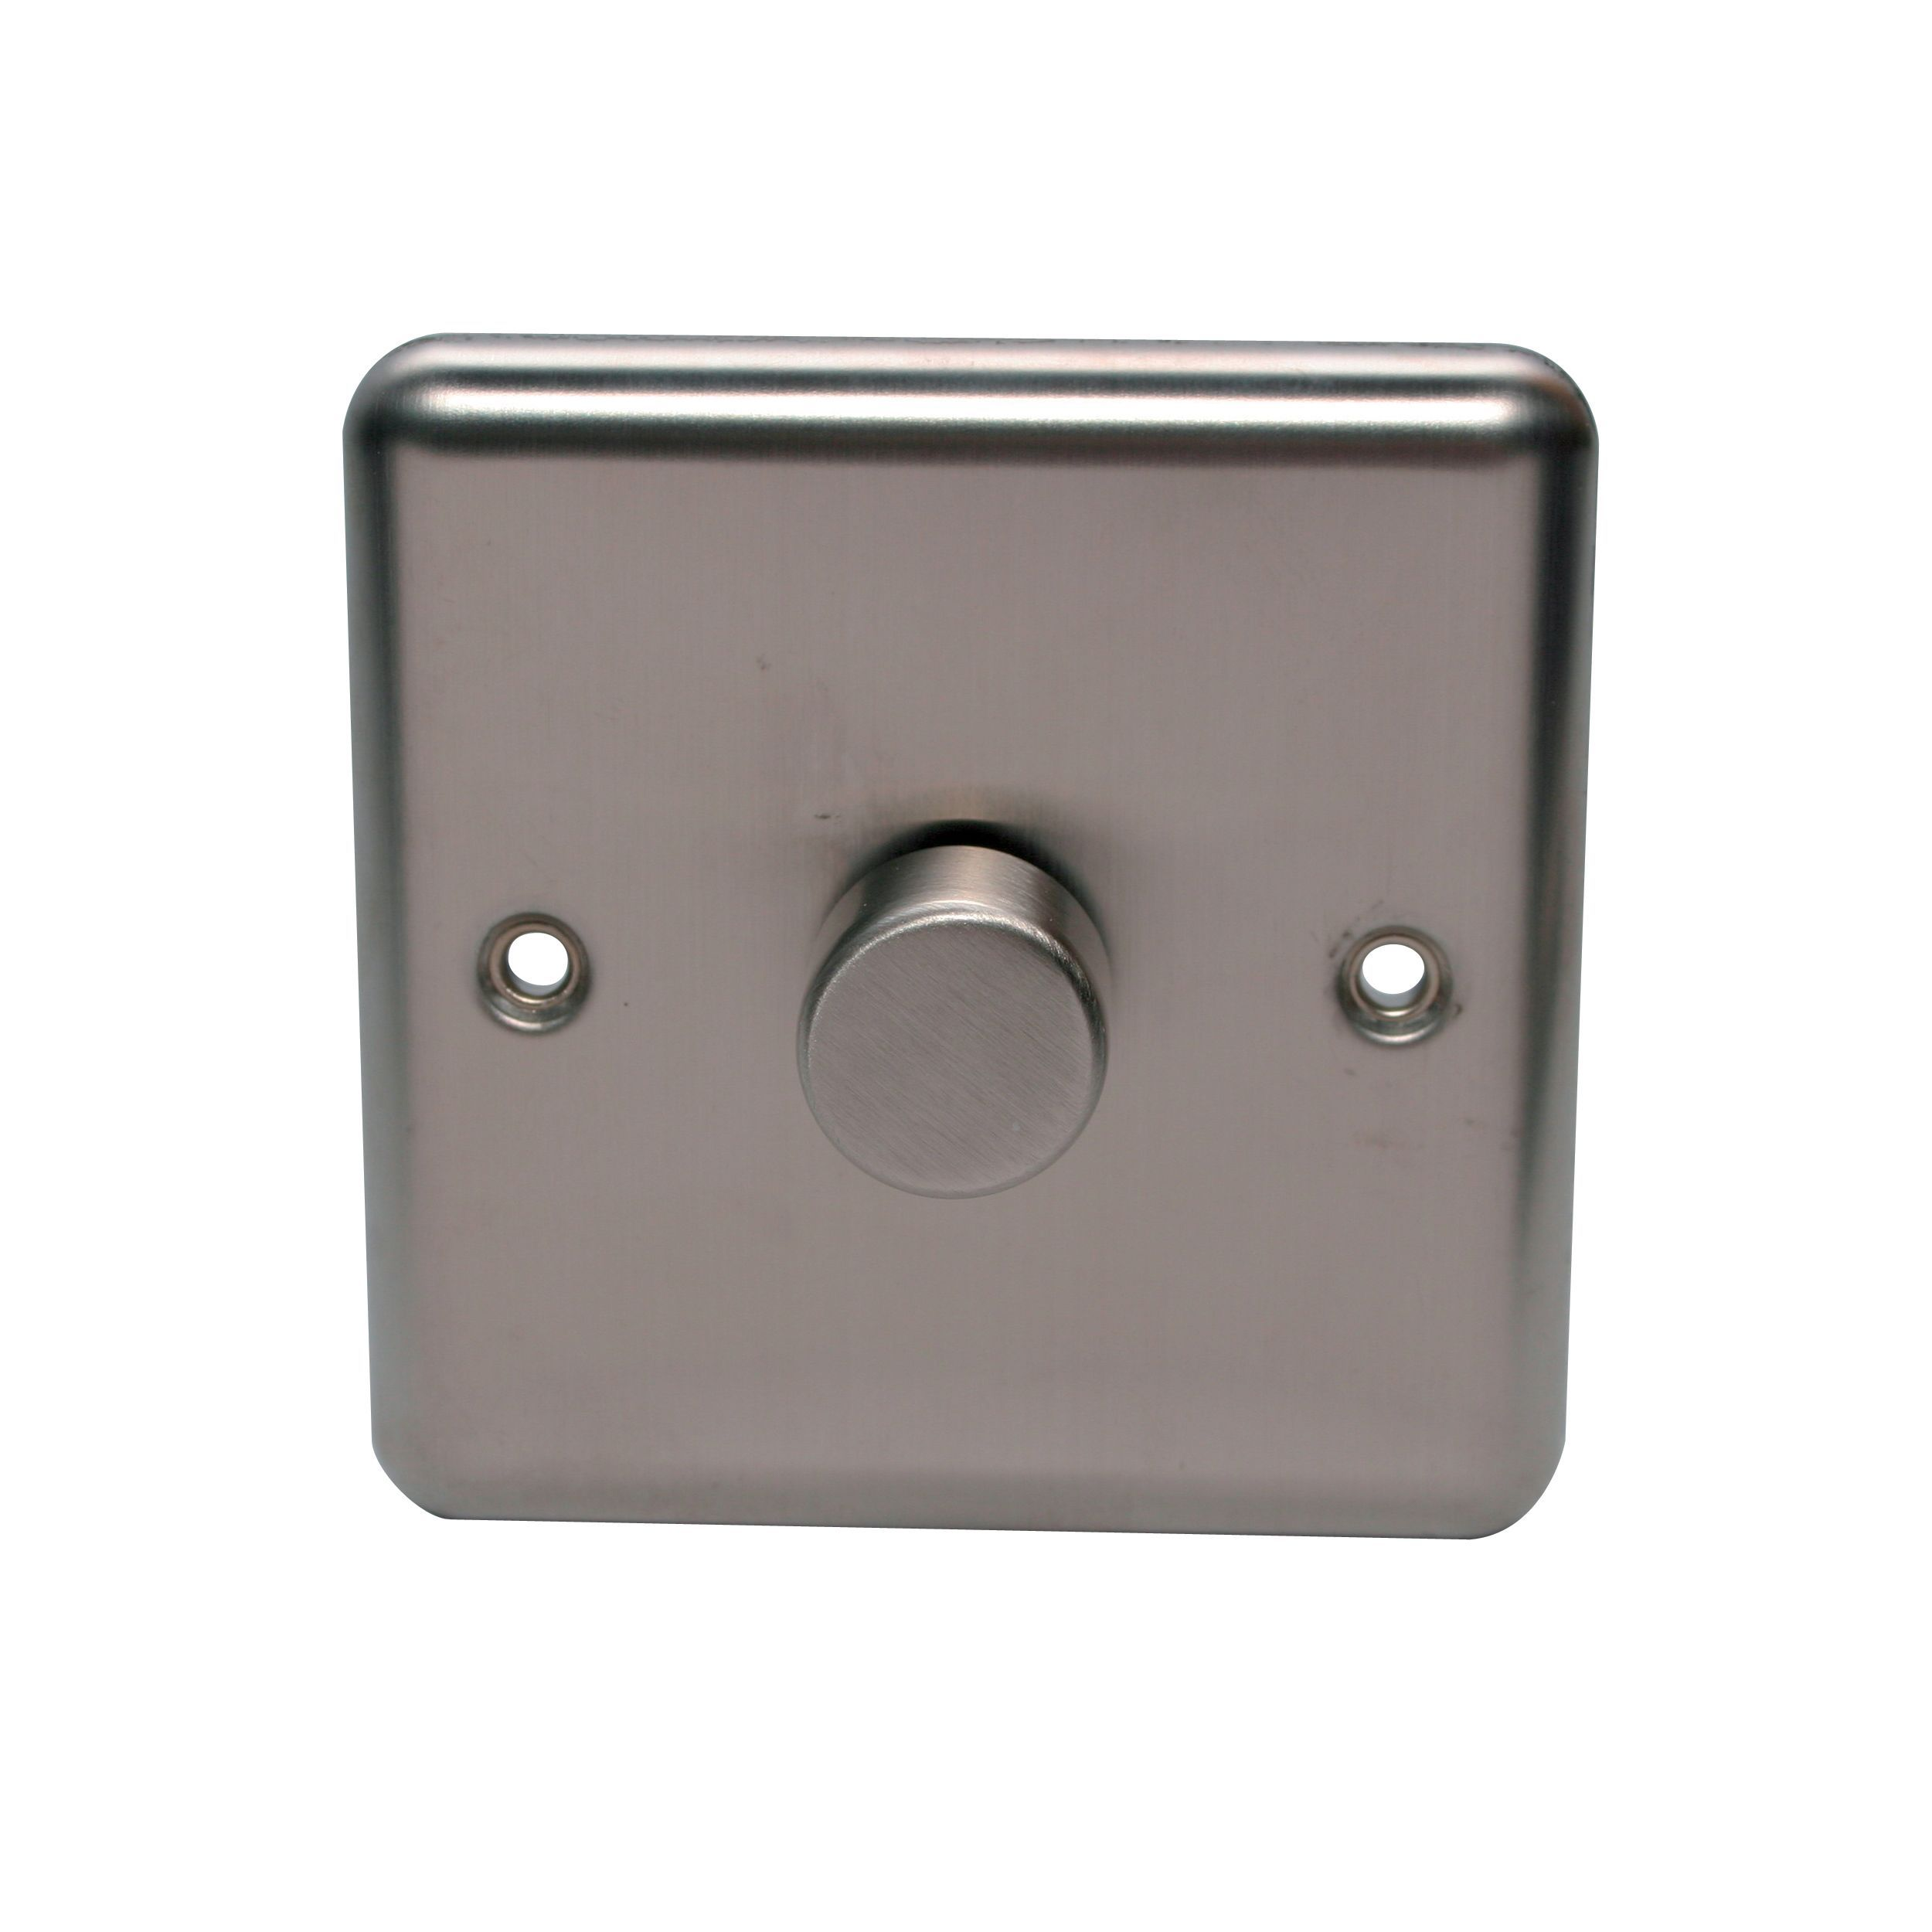 Holder 2-way Single Polished Steel Dimmer Switch